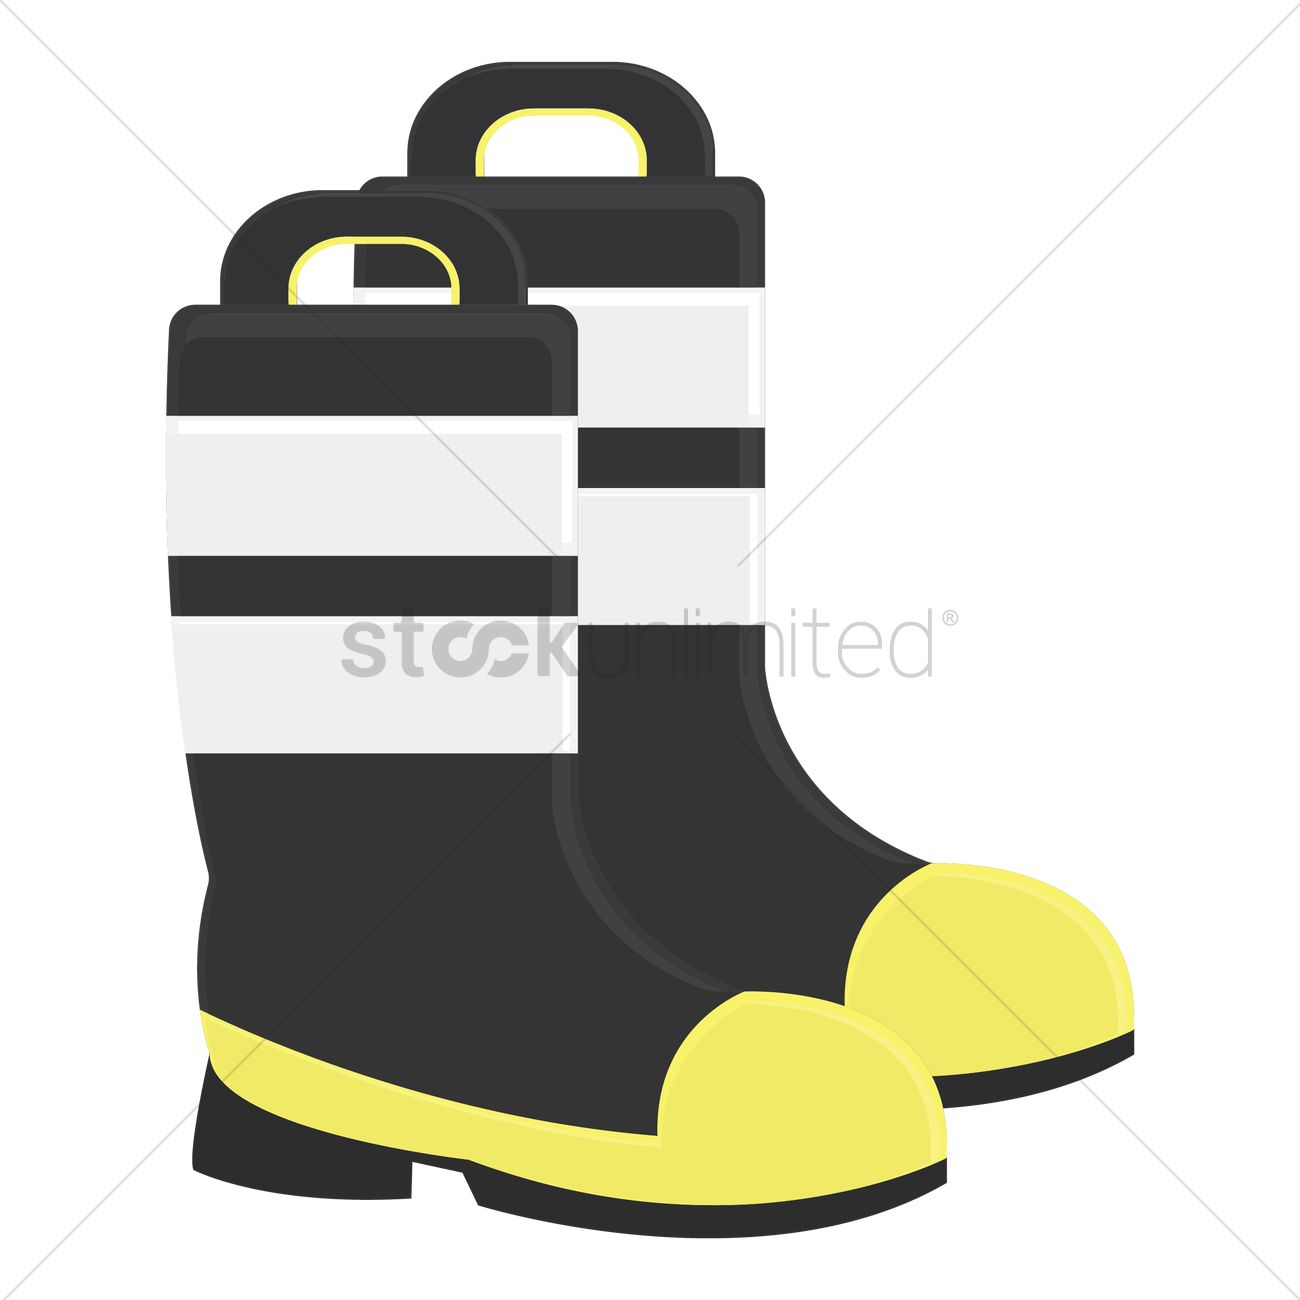 Firefighter Boots Vector Image 1364114 Stockunlimited